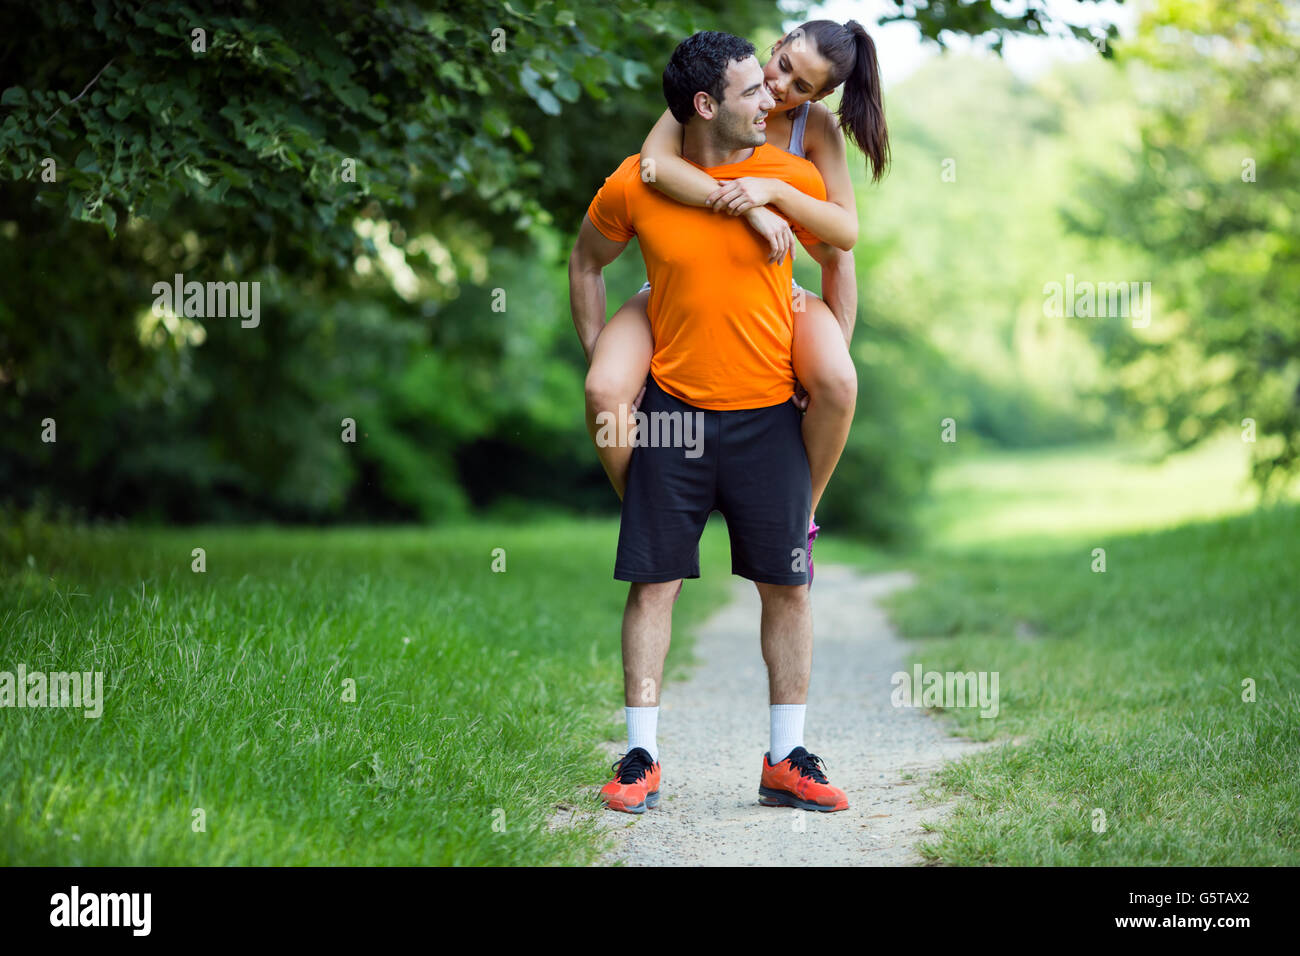 Man carrying woman piggyback after jogging is done - Stock Image